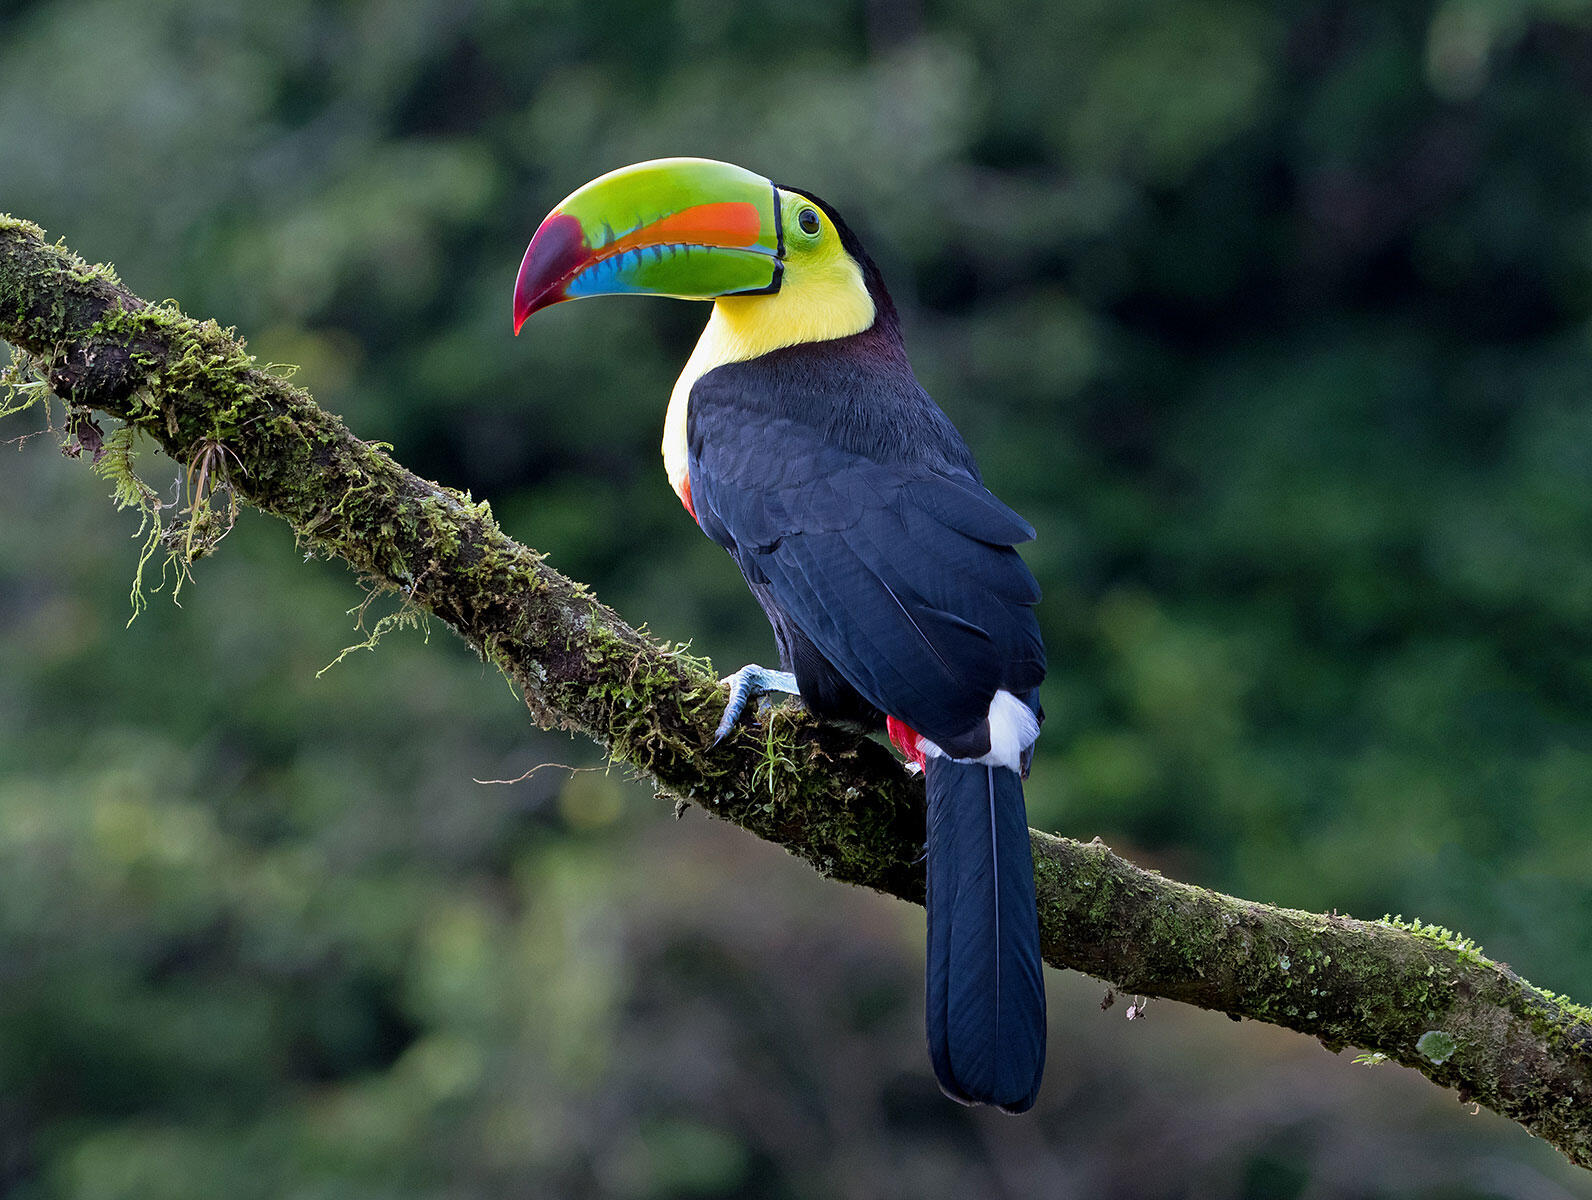 With the help of a sharp-eyed guide, travelers to Tikal could spot the brilliant Keel-billed Toucan. Doug Greenberg/Flickr CC (BY-NC 2.0)